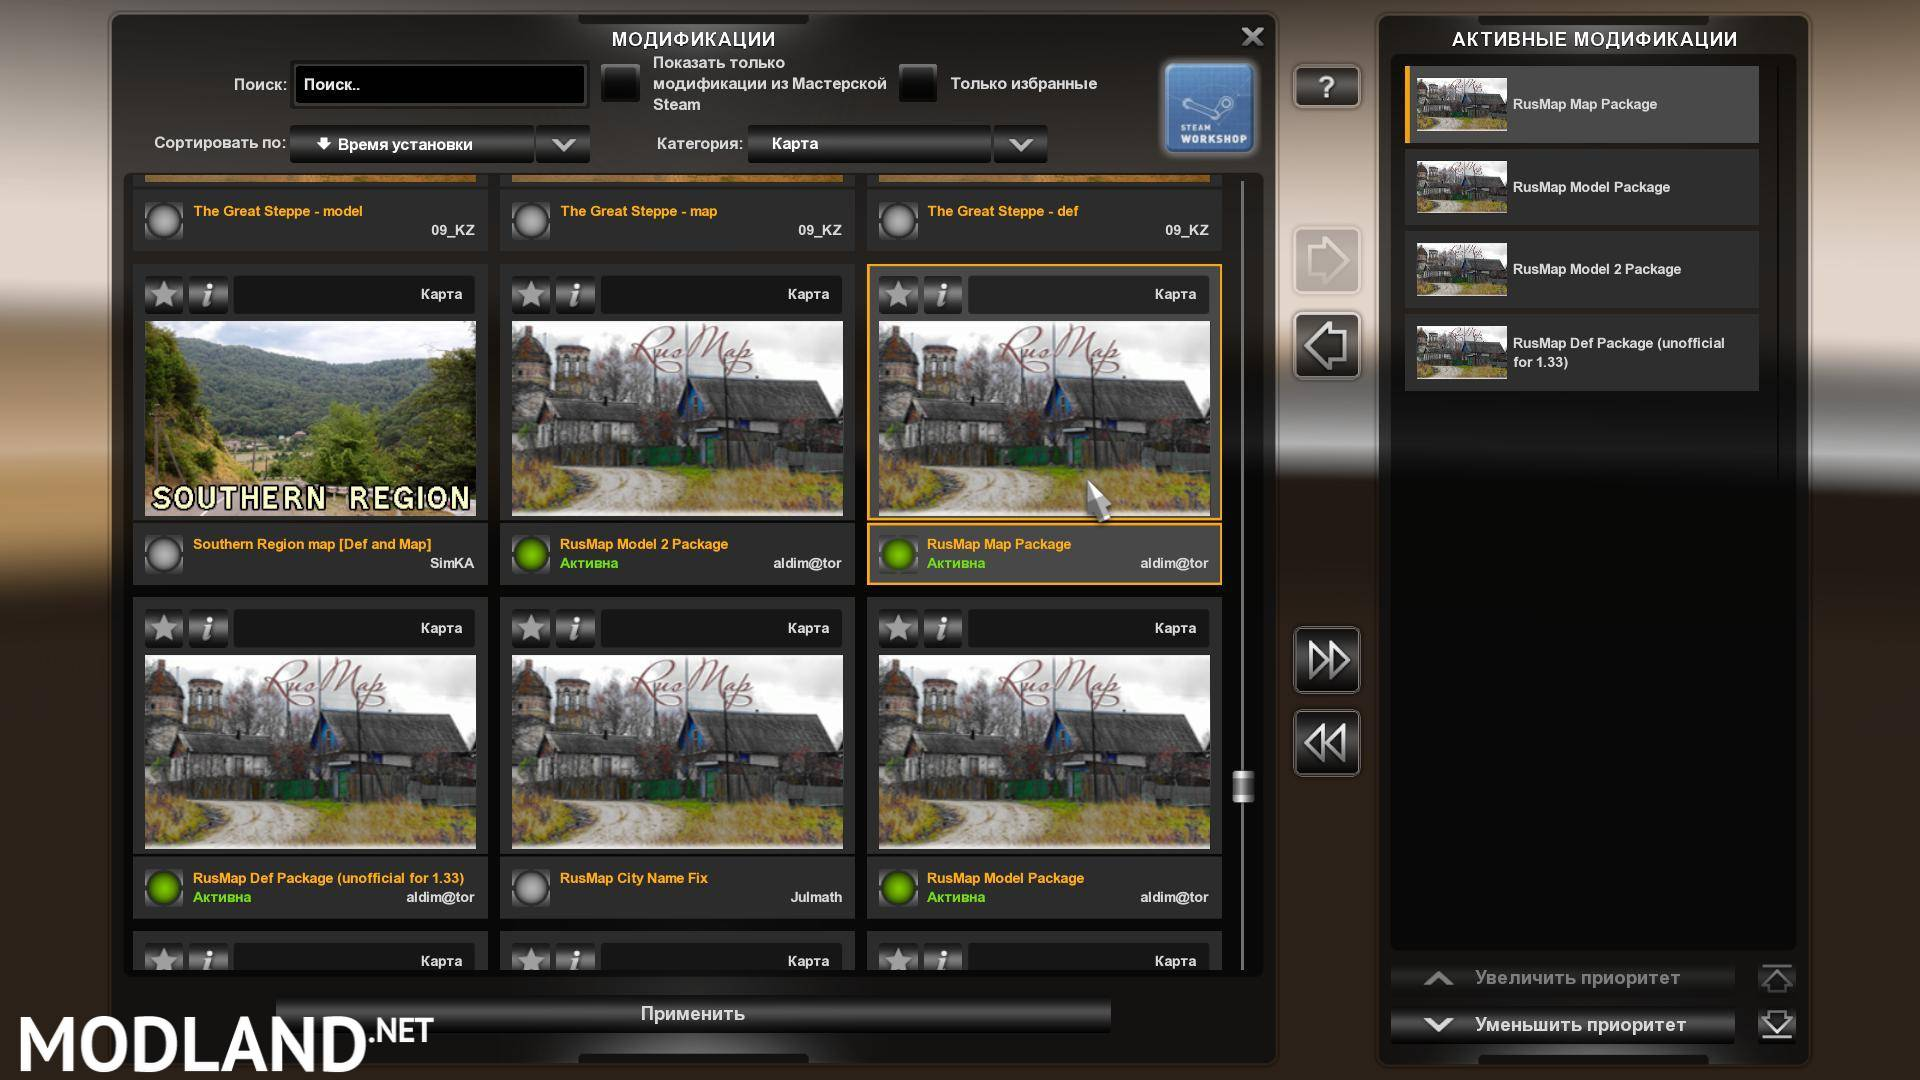 Map RusMap version 20 02 19 1 34 mod for ETS 2